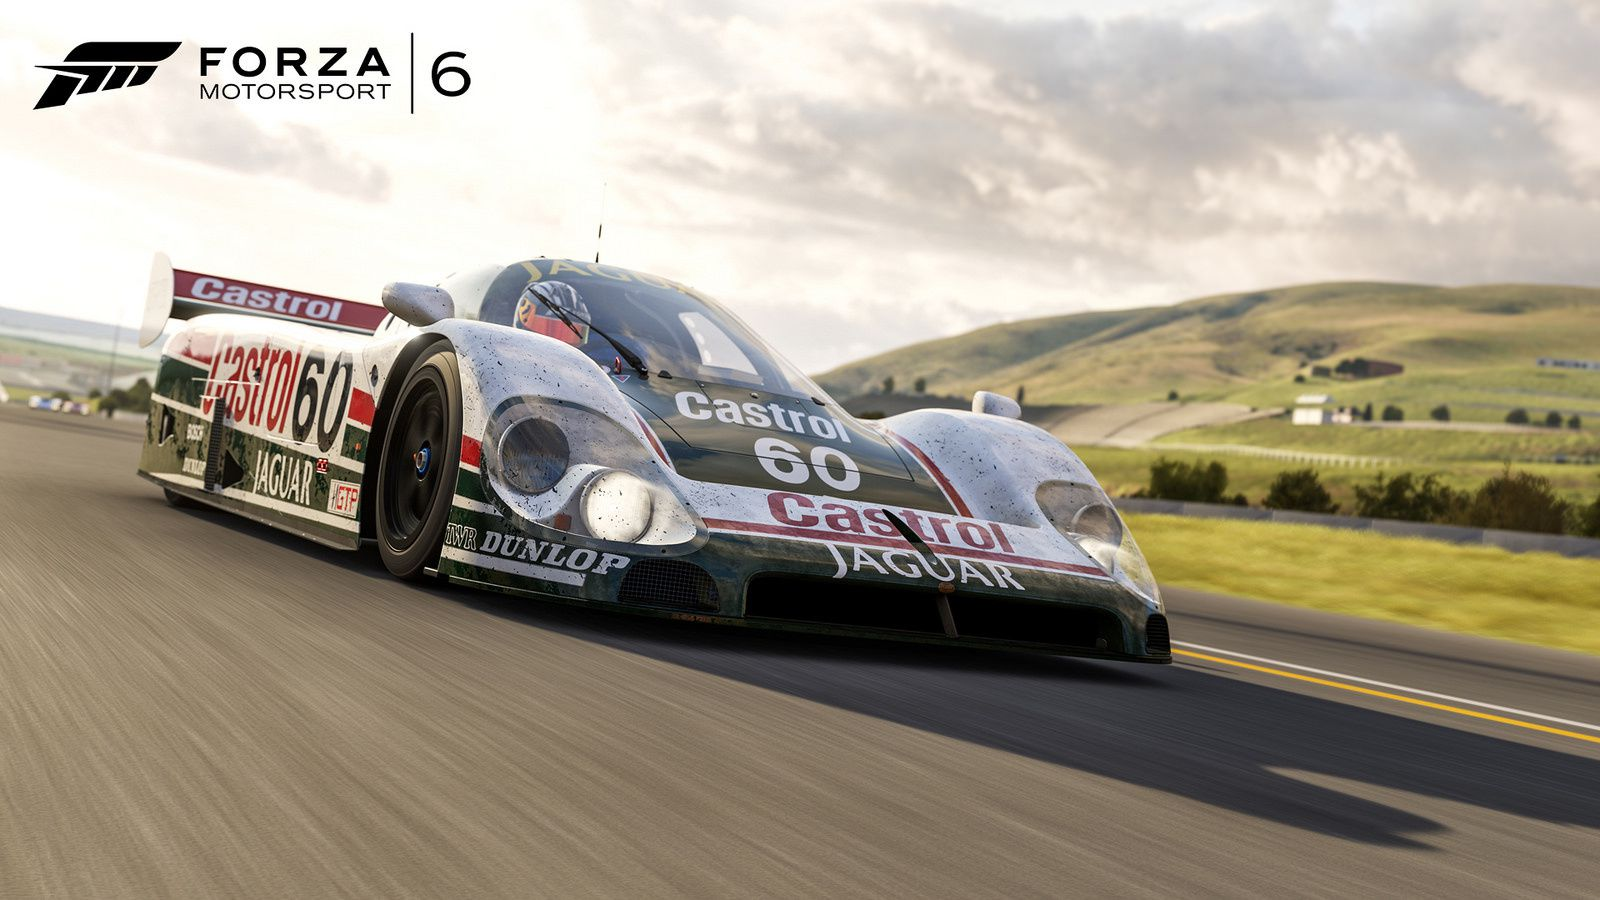 Forza Motorsport 6 - &quot&#x3B;Meguiars Car Pack&quot&#x3B;